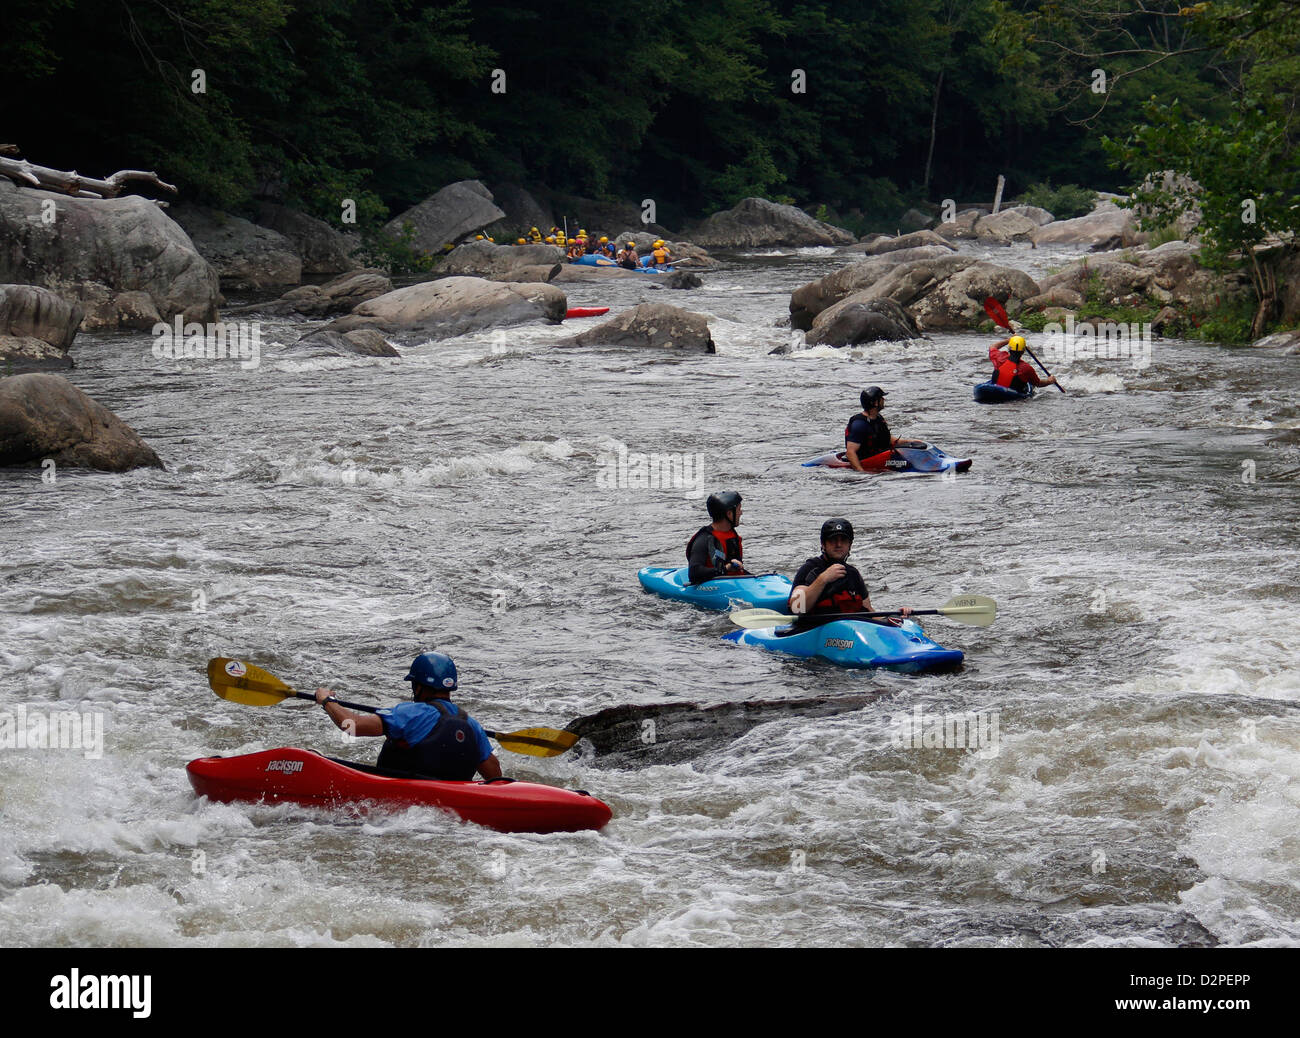 Kayaker Upper Youghiogheny River Maryland whitewater rapids - Stock Image